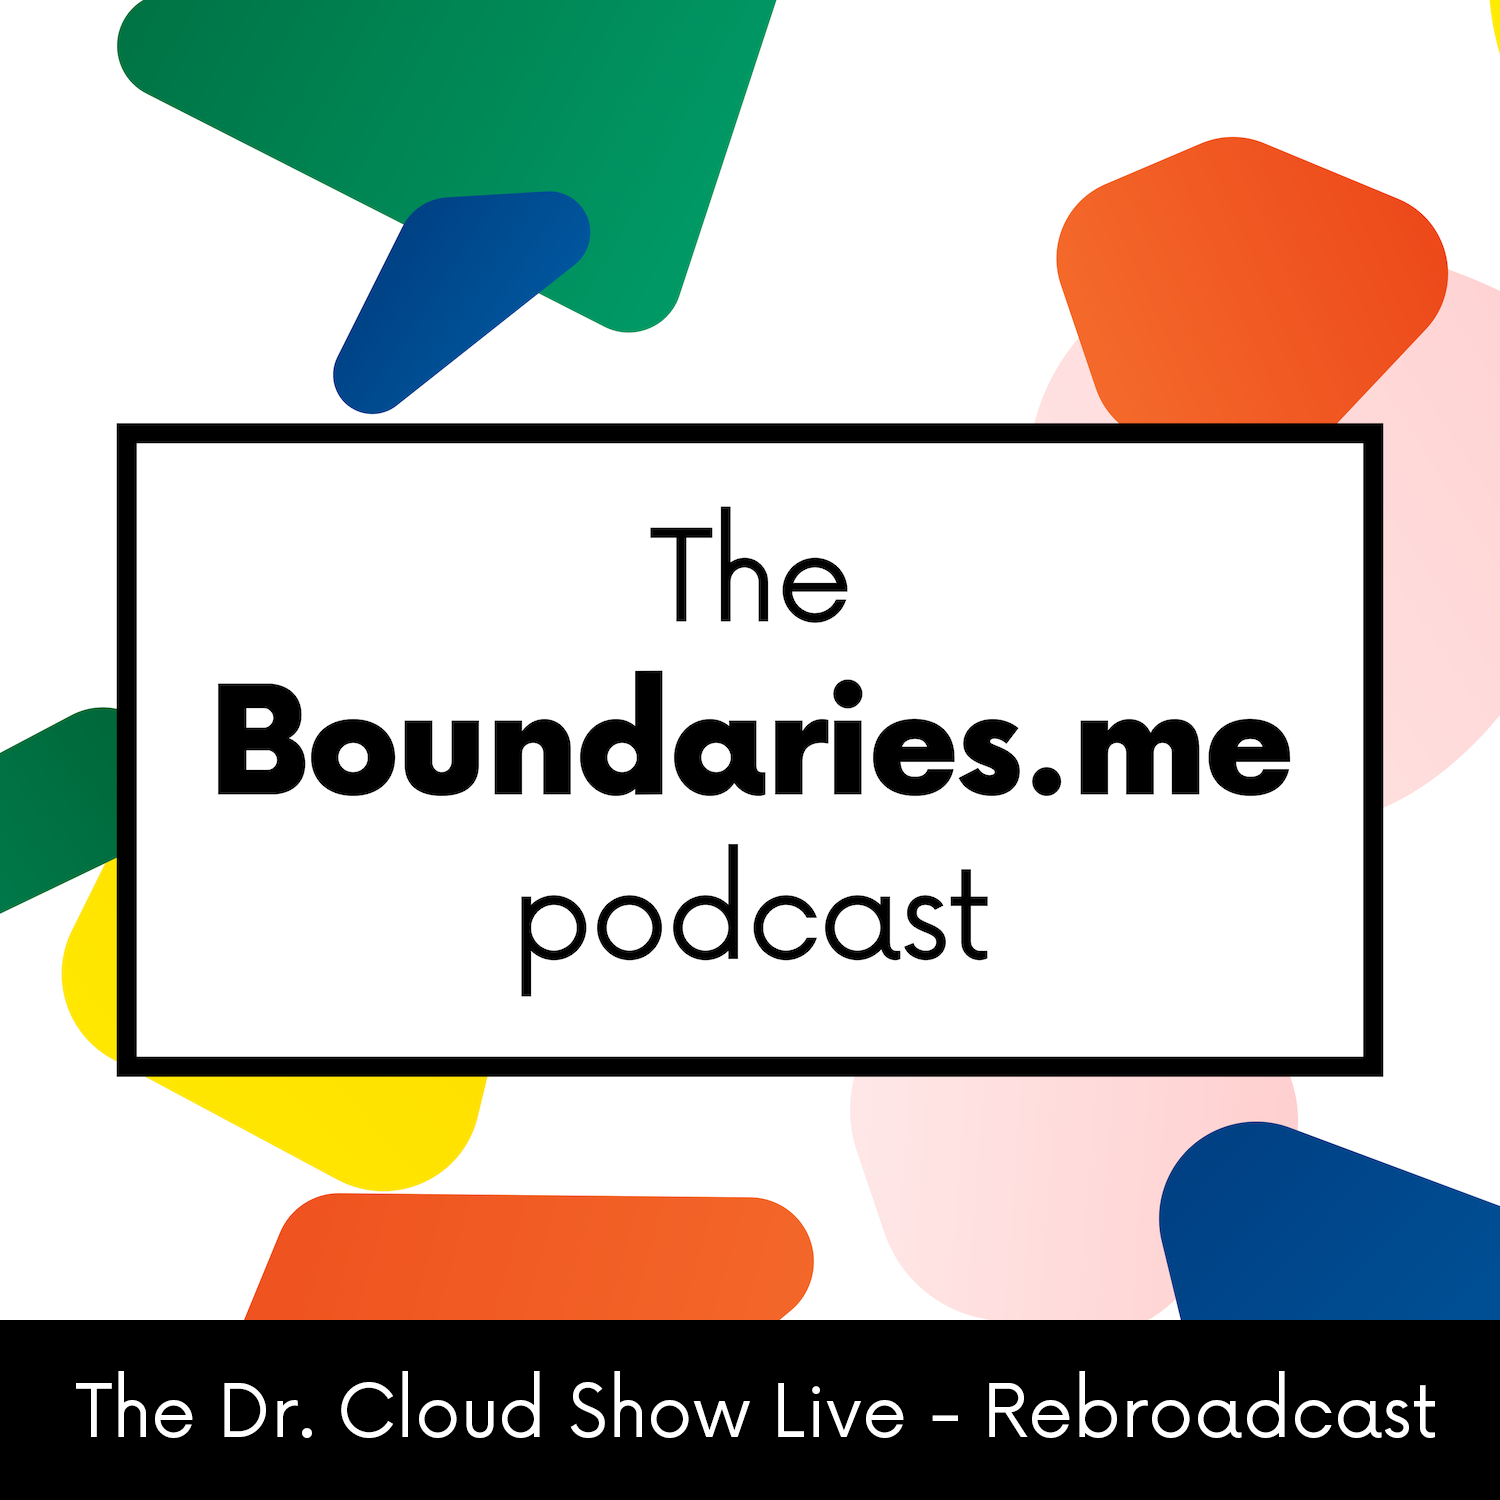 Episode 226 - The Dr. Cloud Show Live - Receiving and Giving - 5-17-2021